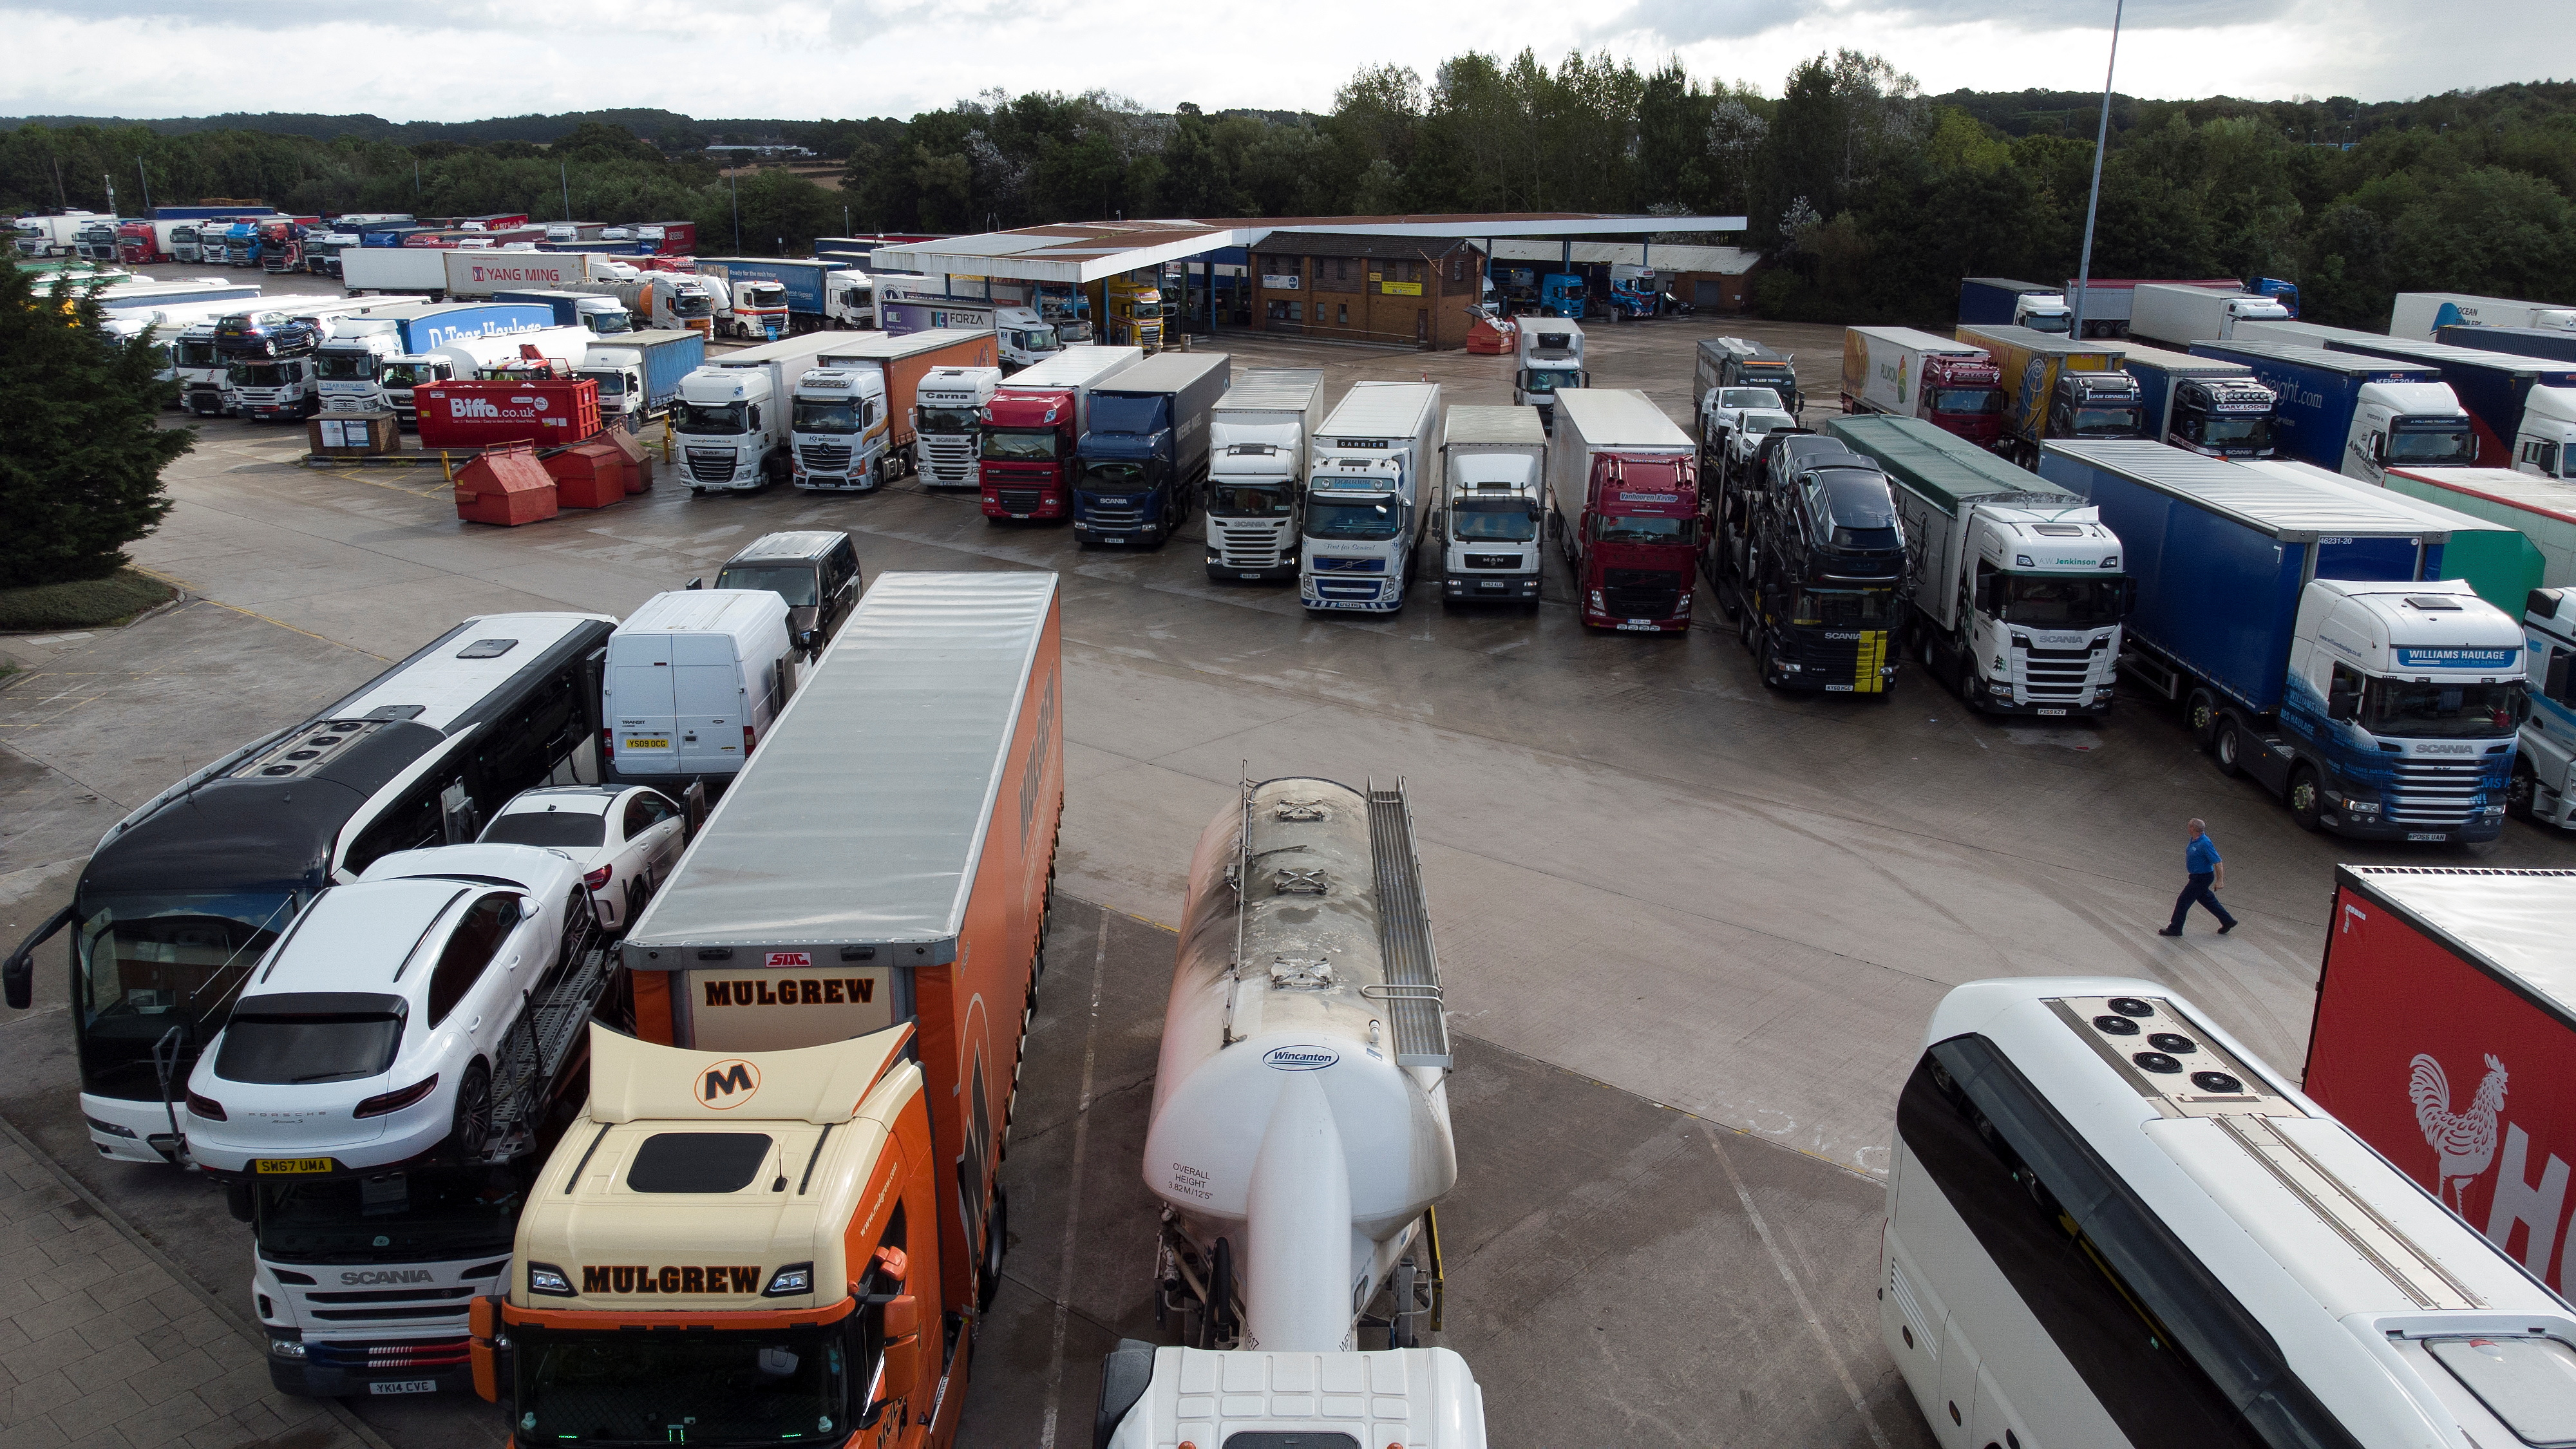 Lorries are seen at Lymm Services, Lymm, Britain, September 29, 2021. Picture taken with a drone. REUTERS/Jason Cairnduff